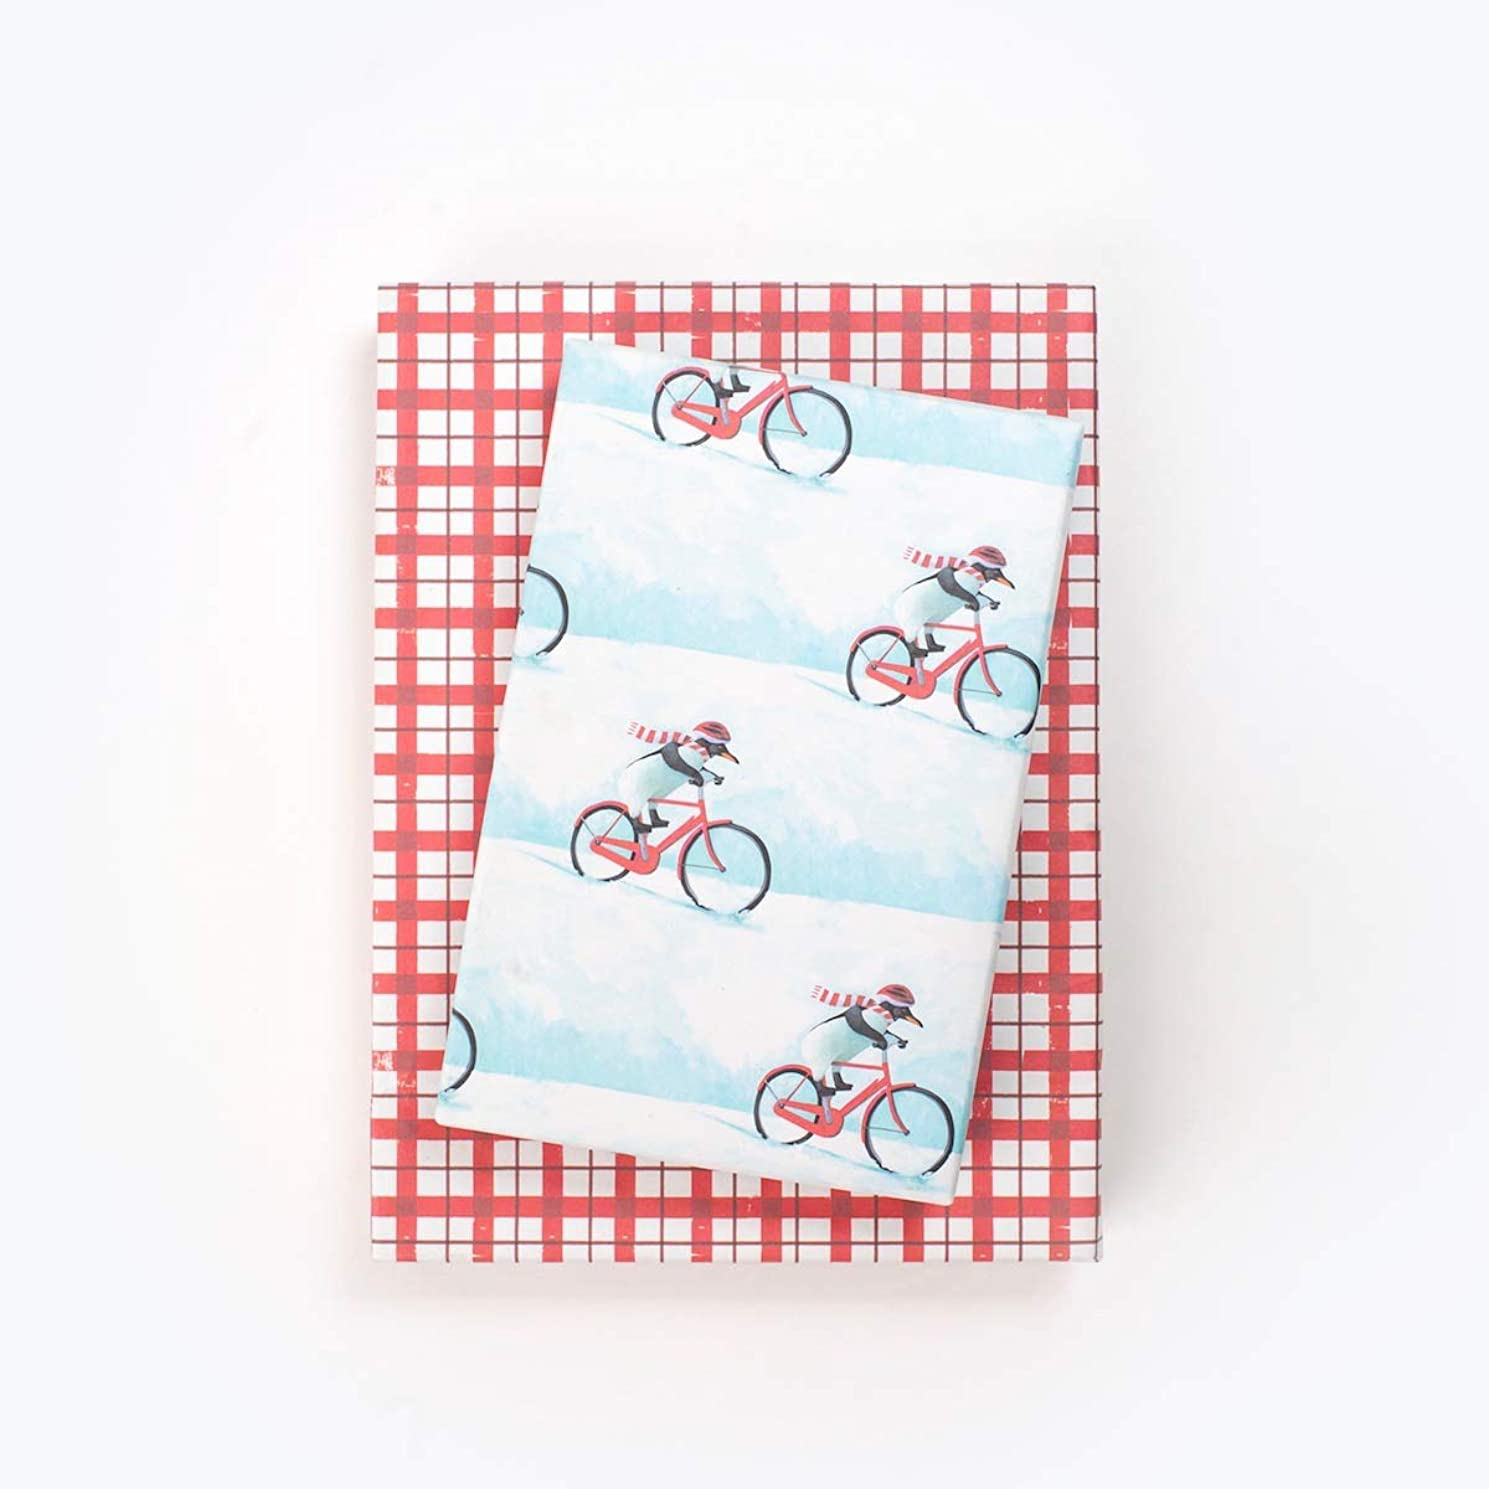 City Christmas Penguin Dashing Through Snow - Reversible Holiday Wrapping Paper - Eco Gift Wrap Allport Editions x Wrappily